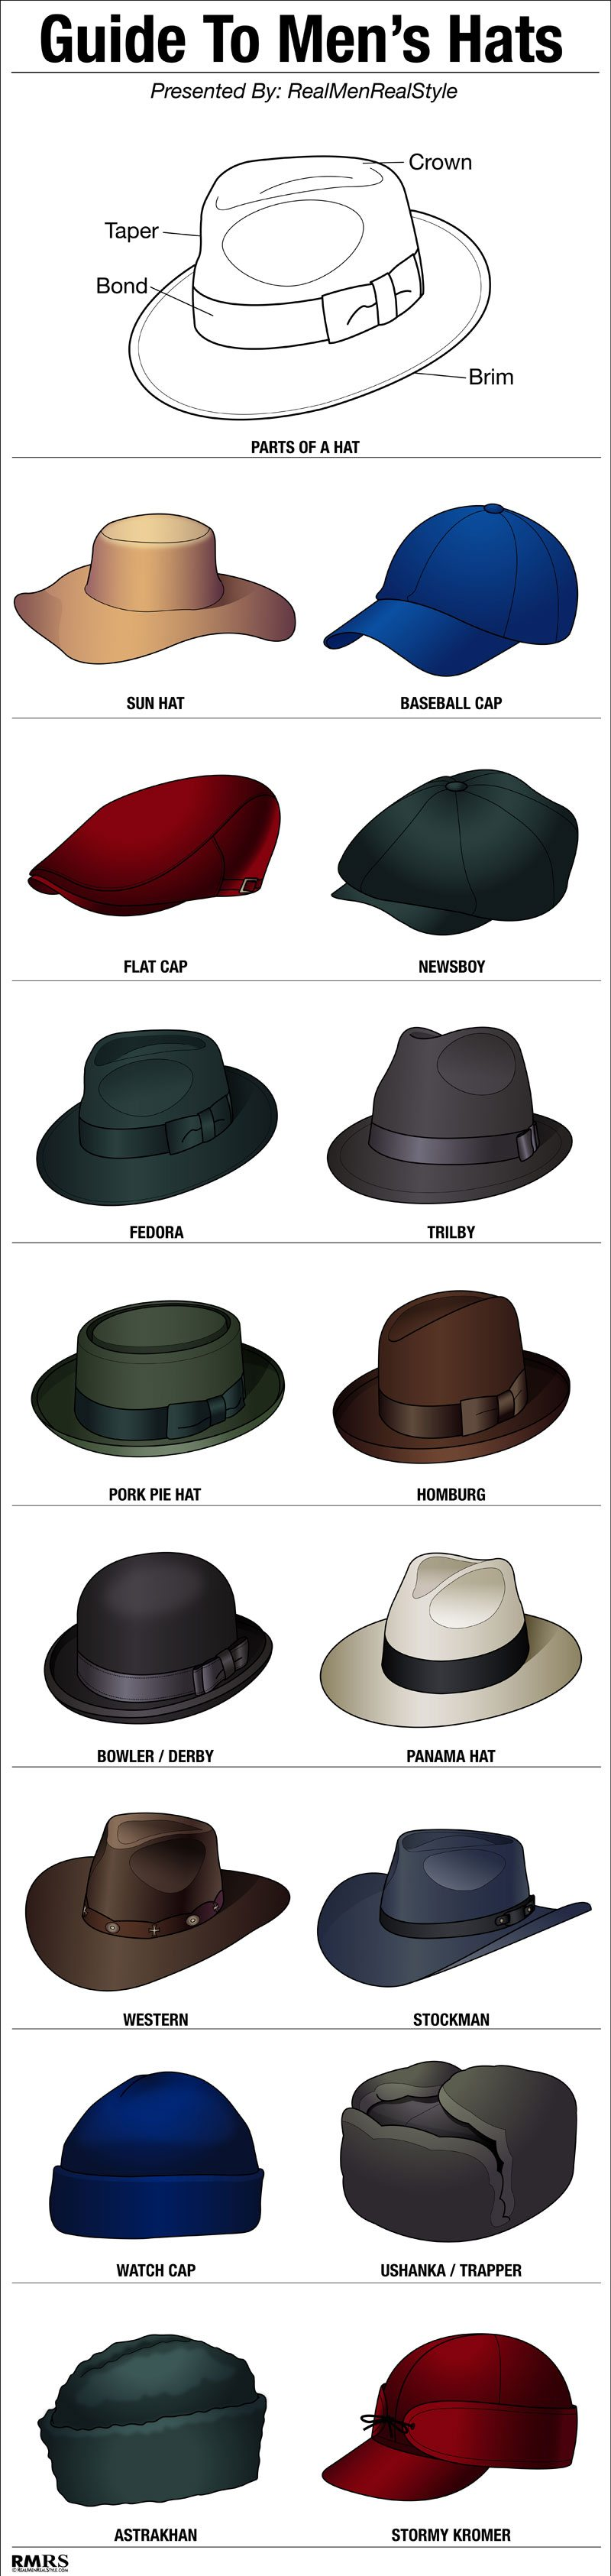 mens-hats-infographic-rmrs-800